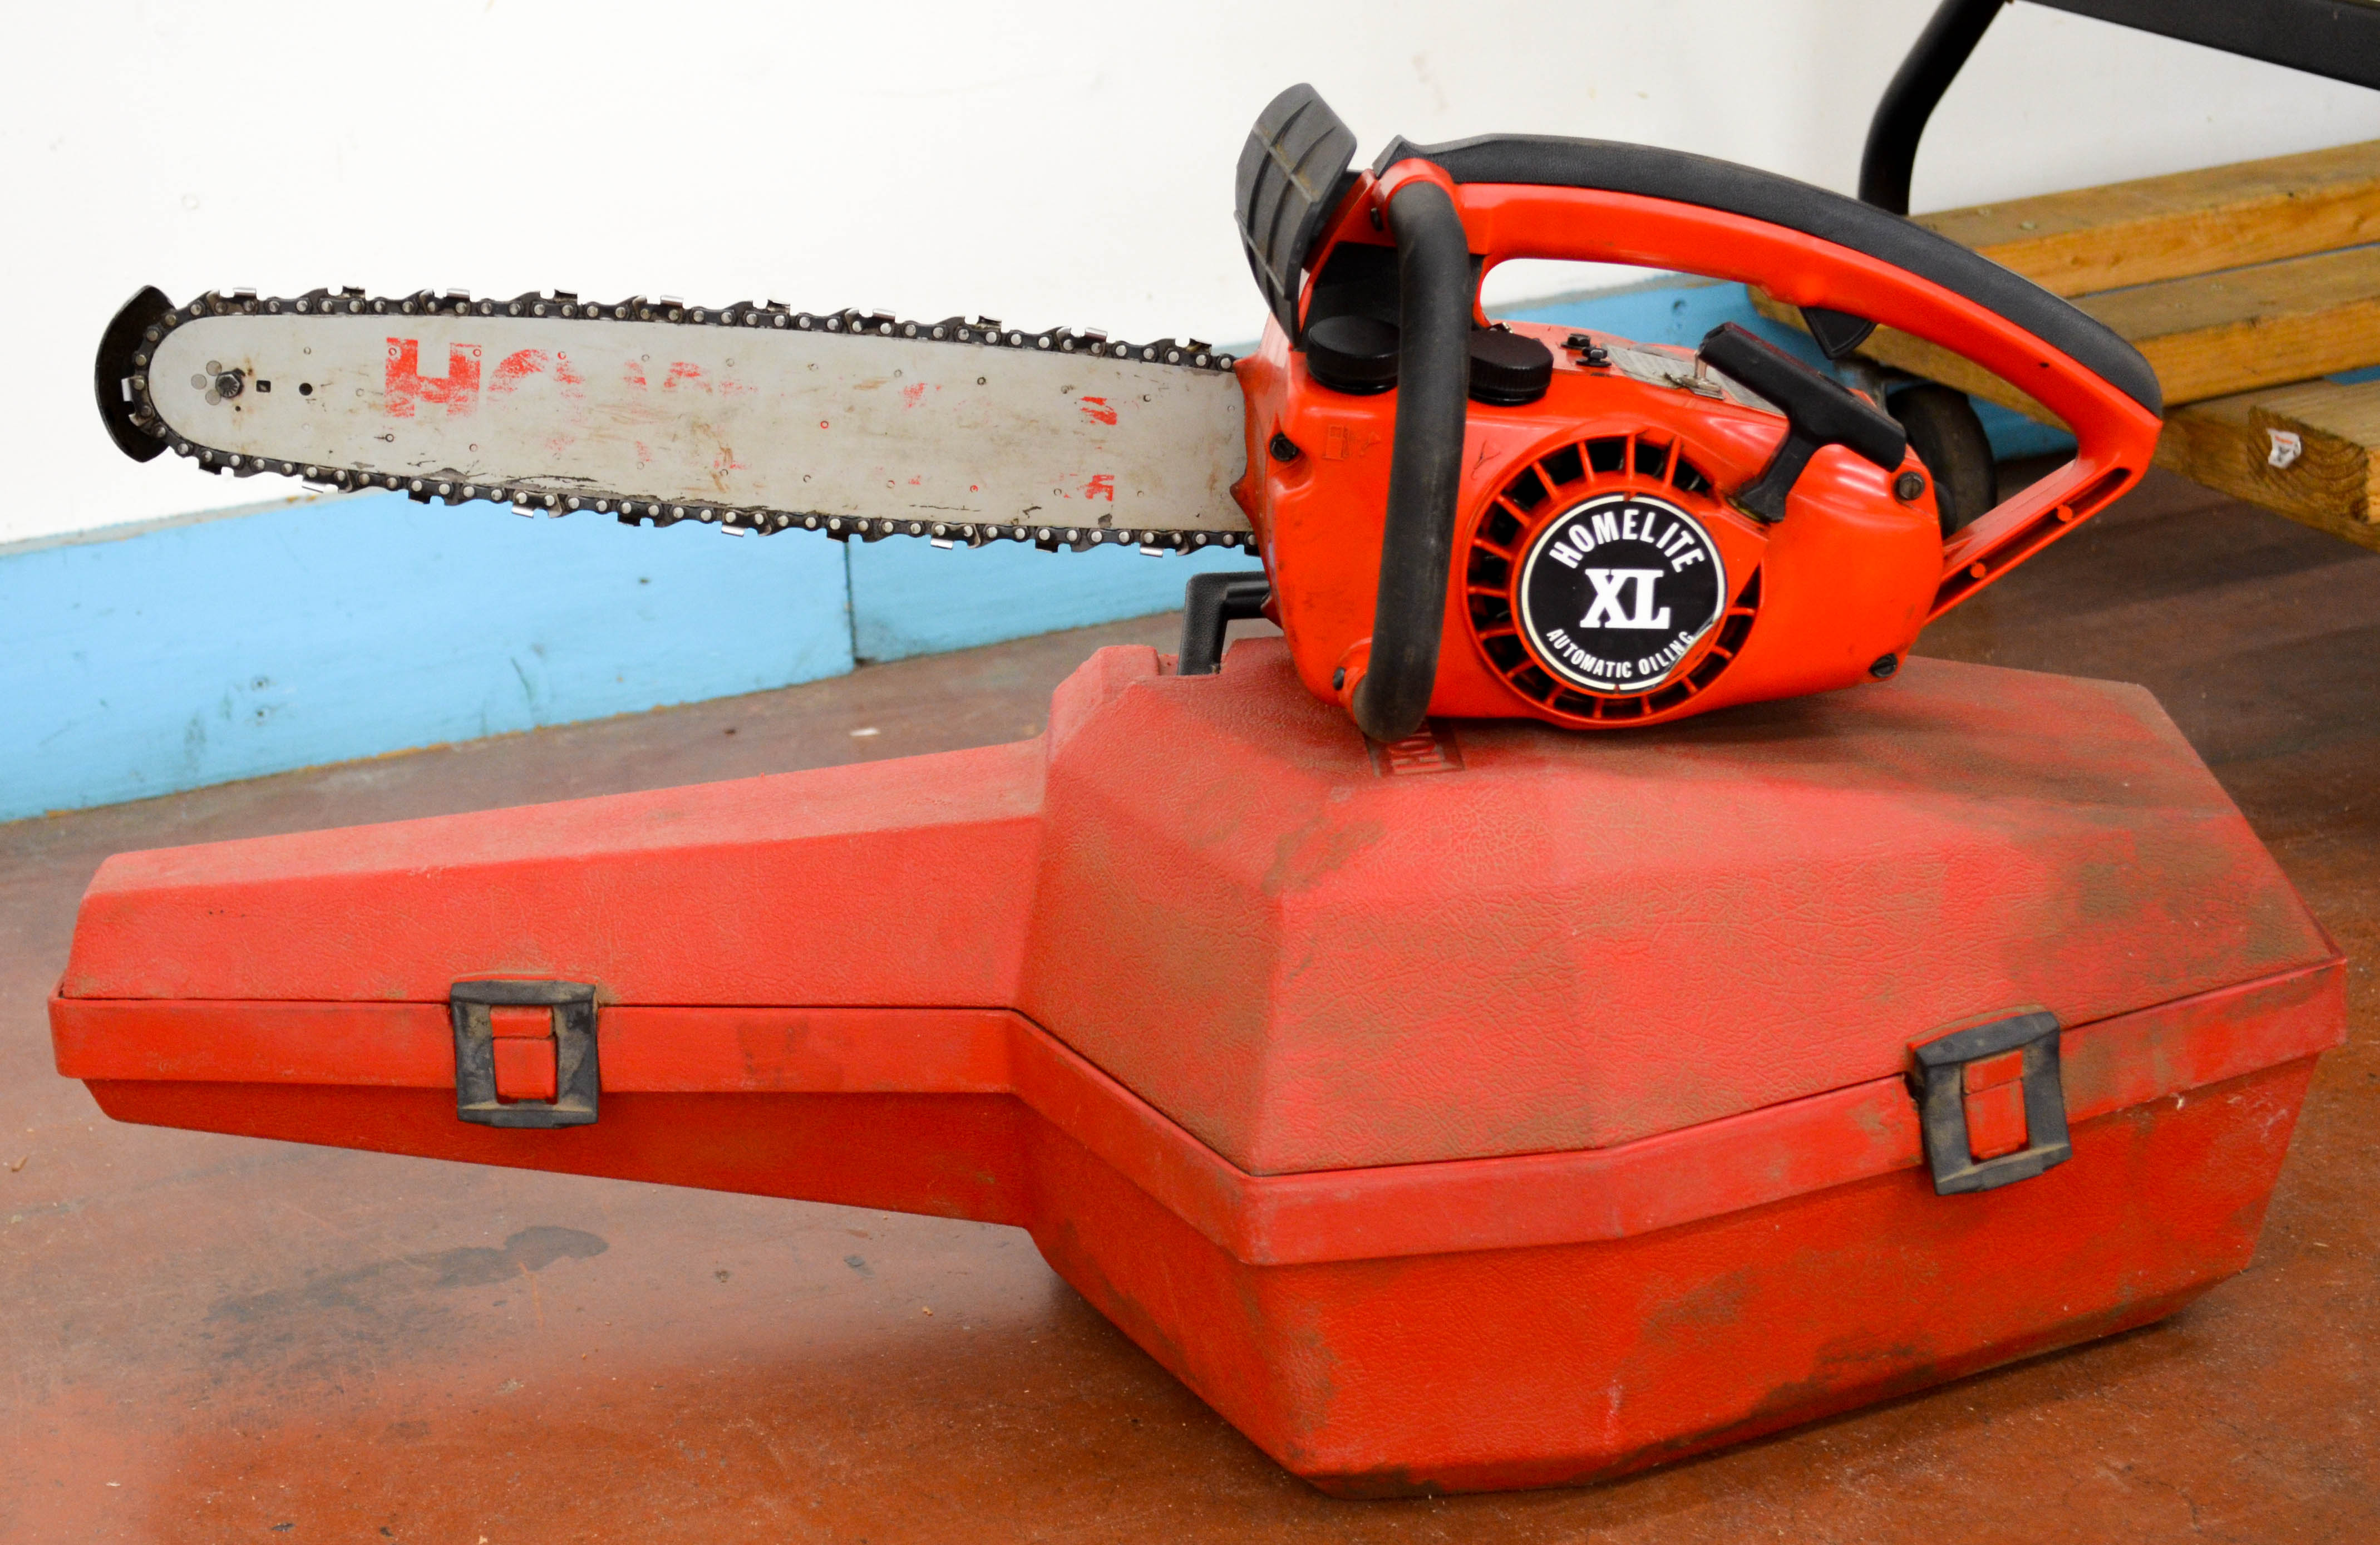 51 Homelite XL Chainsaw with Case